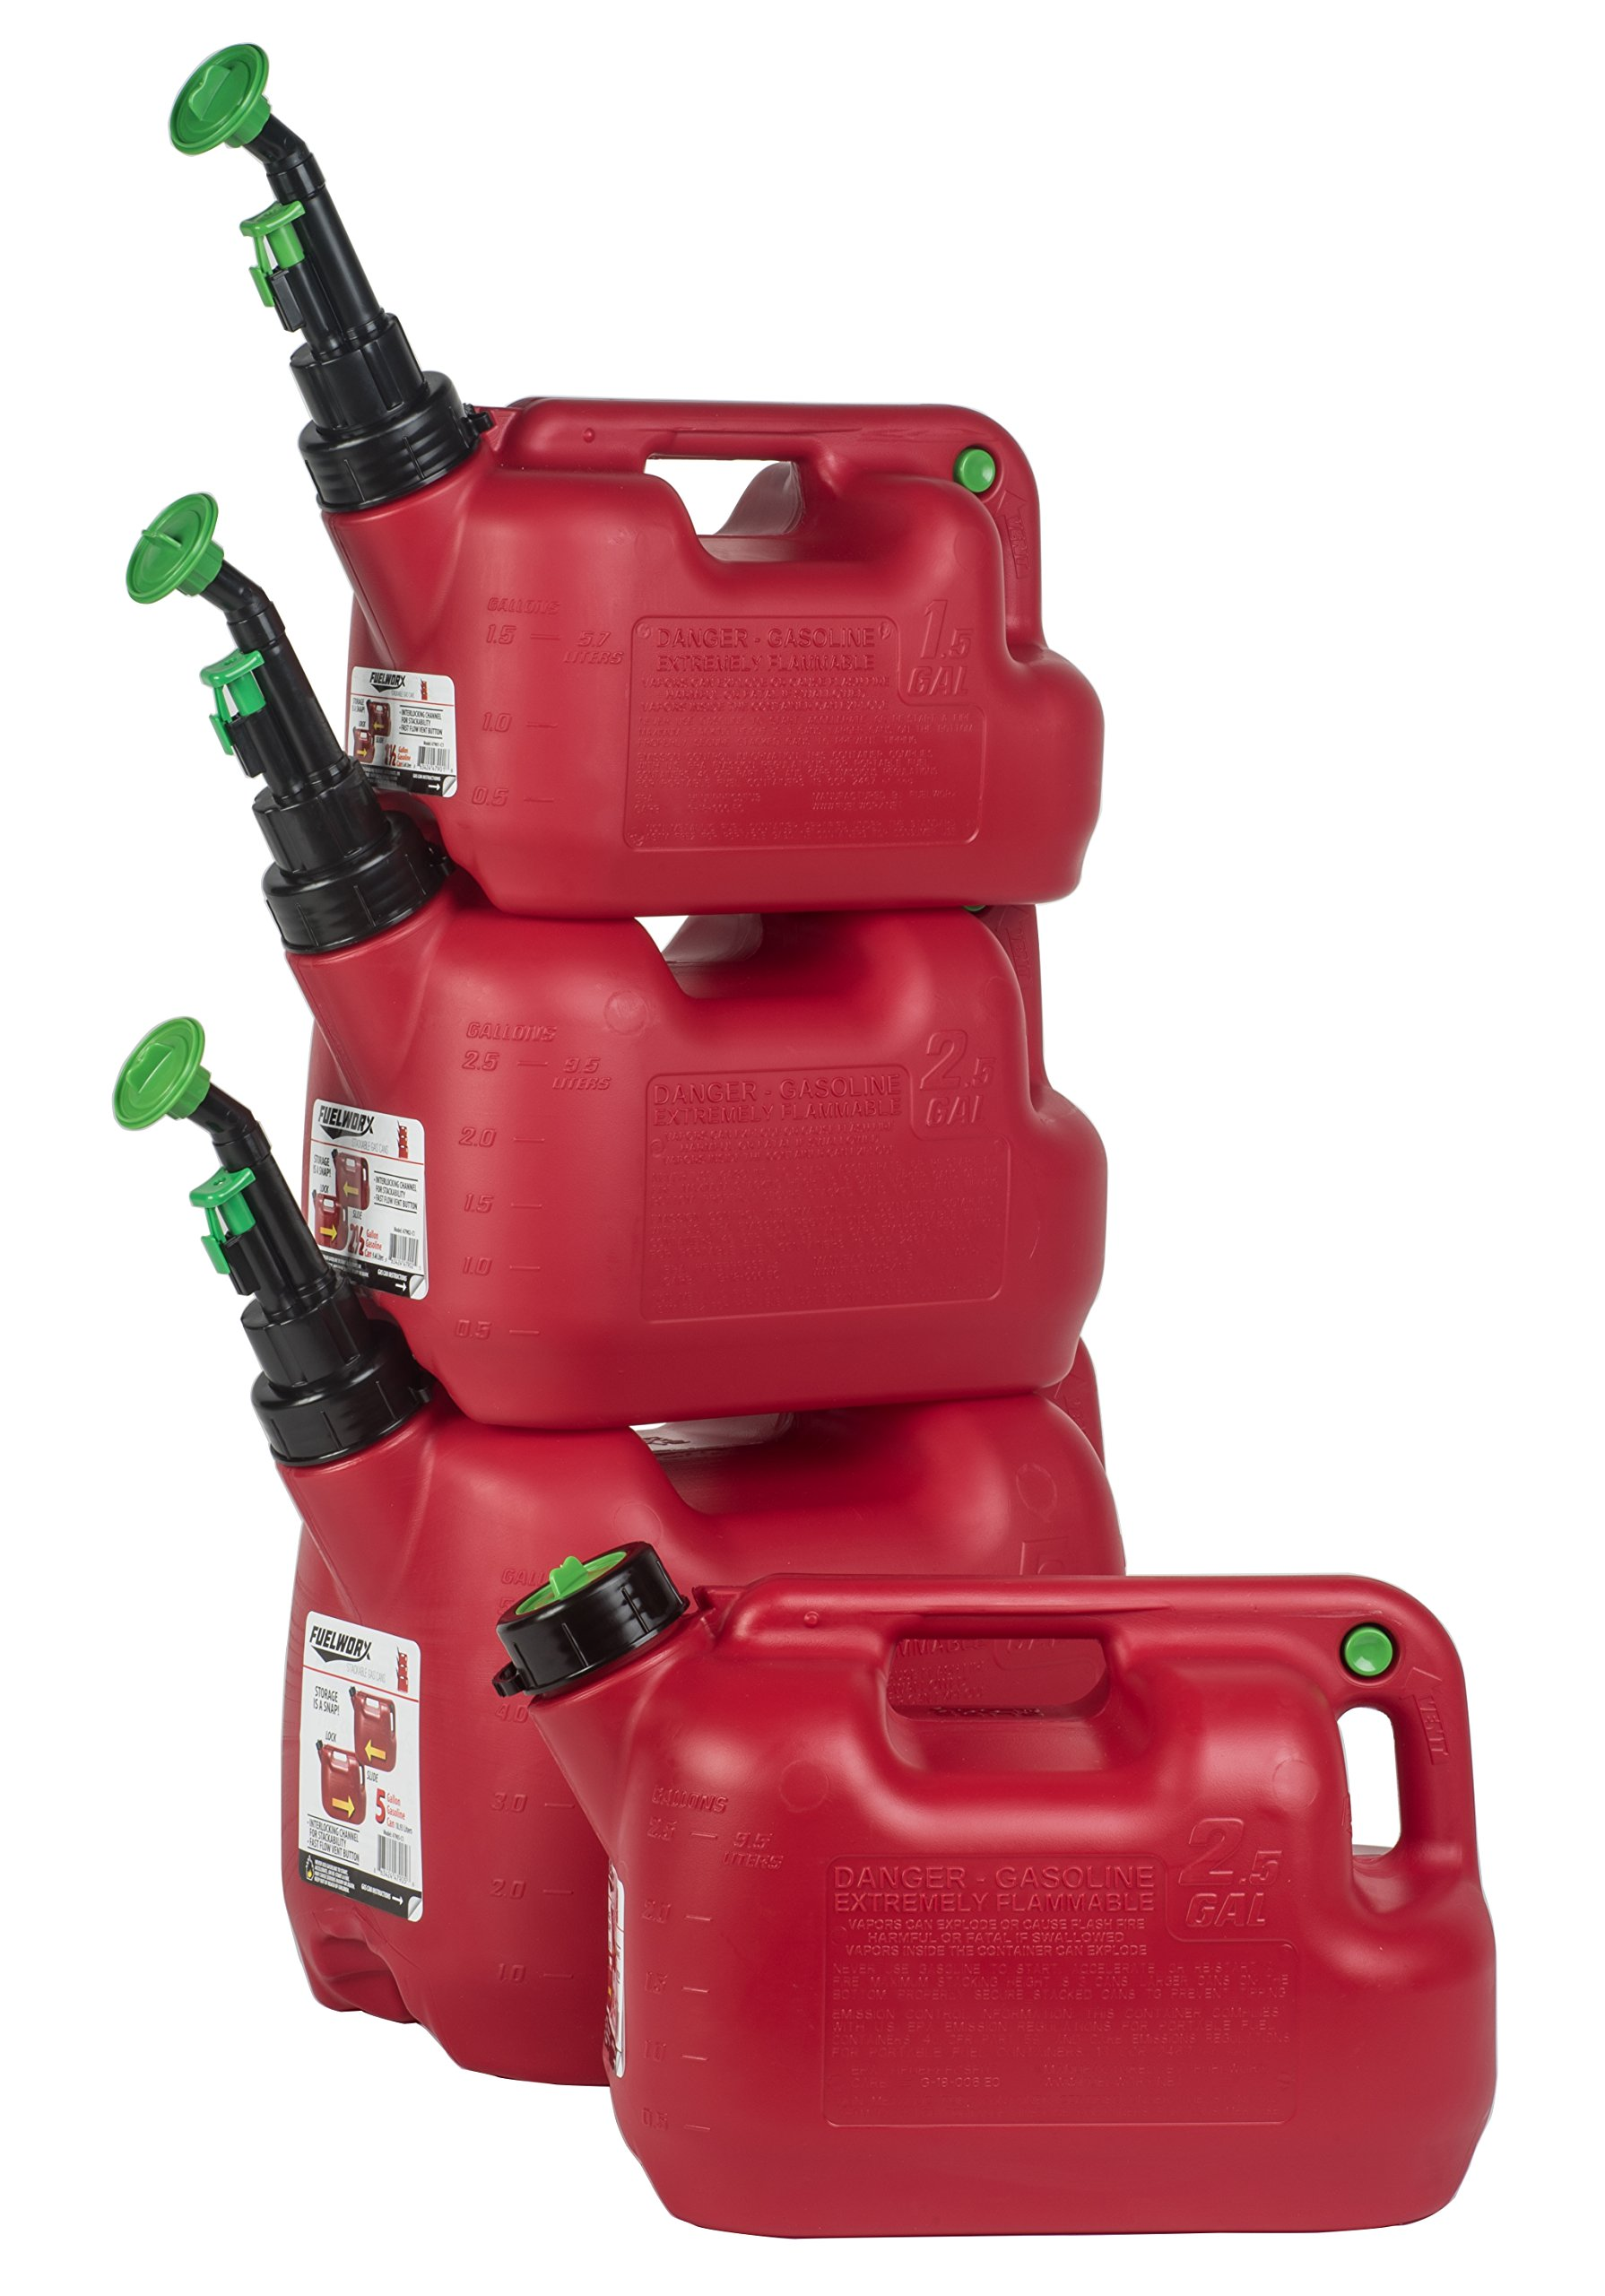 Fuelworx 47902 Red 2.5 Gallon Gas Can